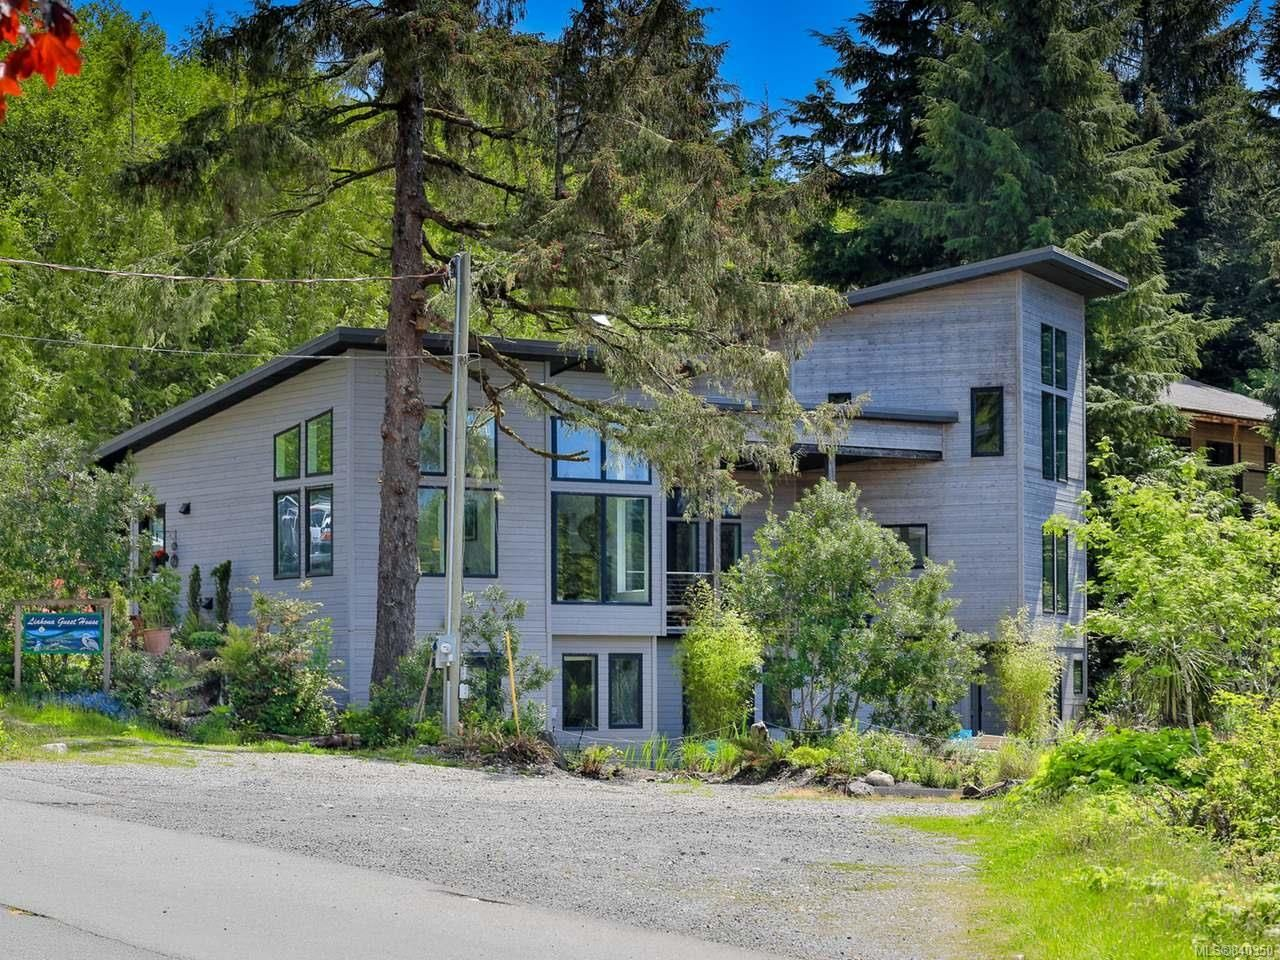 Photo 70: Photos: 1068 Helen Rd in UCLUELET: PA Ucluelet House for sale (Port Alberni)  : MLS®# 840350